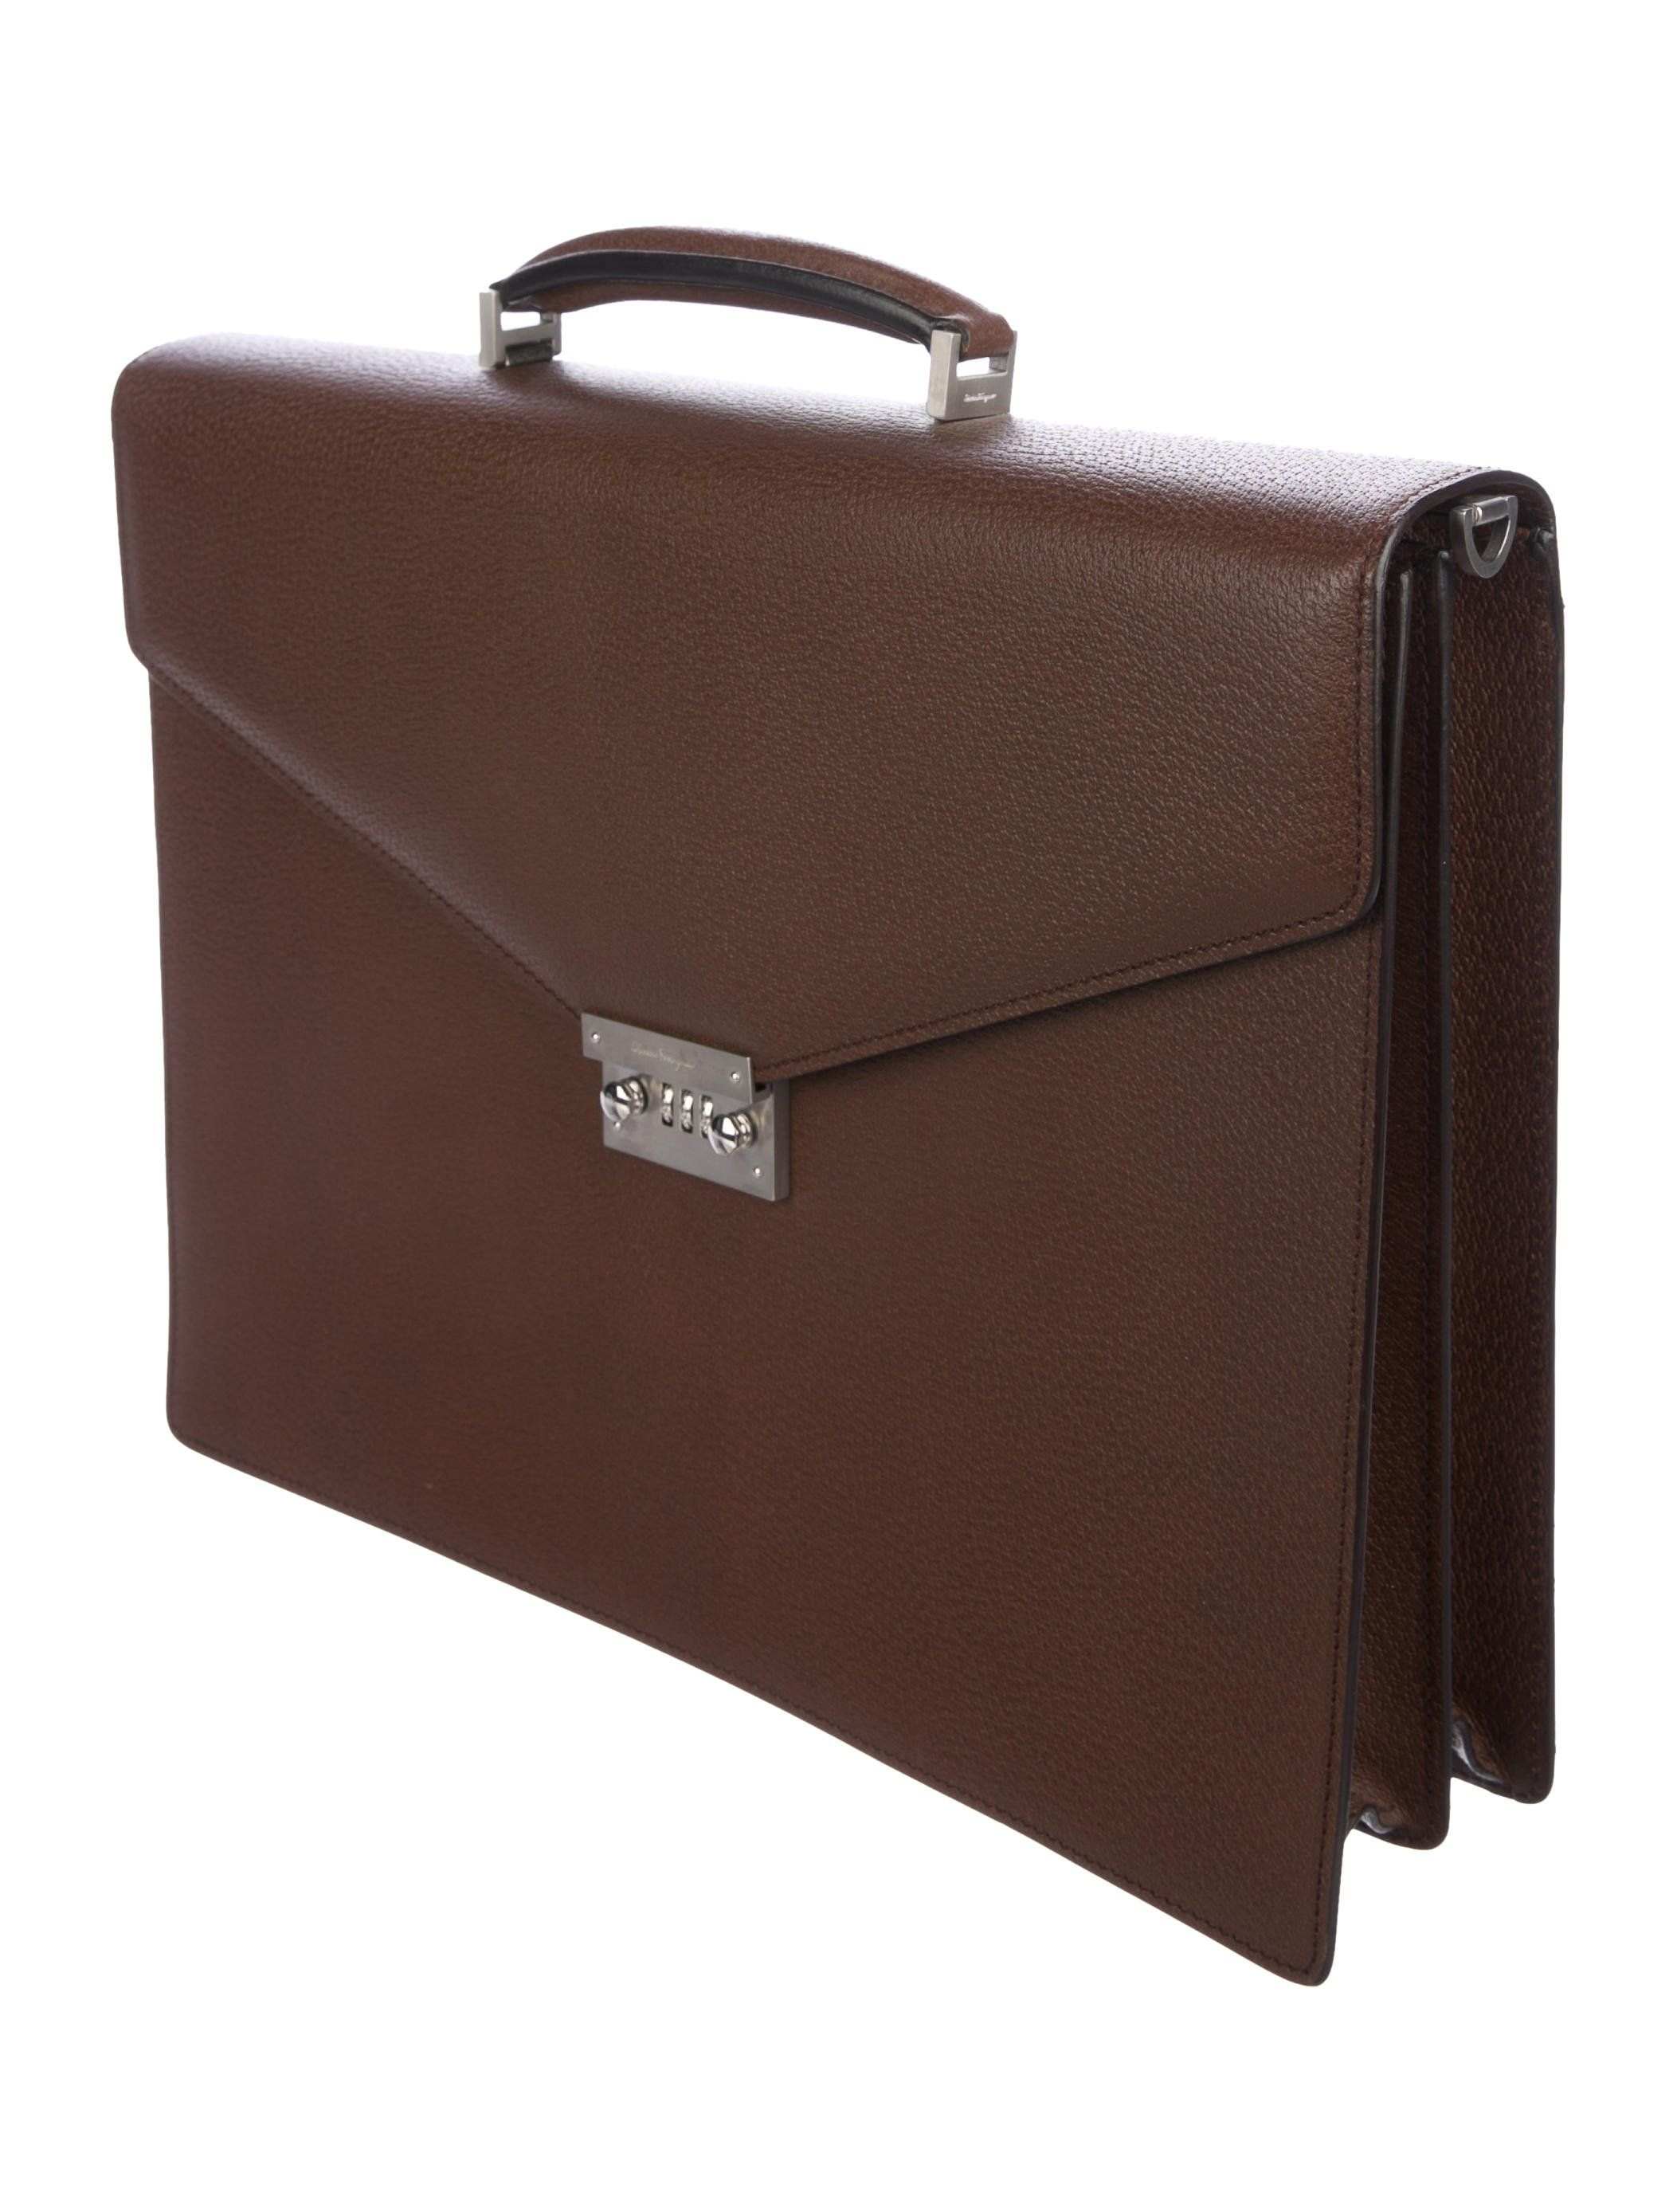 3cbaa14ea8 Men s brown textured leather Salvatore Ferragamo briefcase with brushed  silver-tone hardware